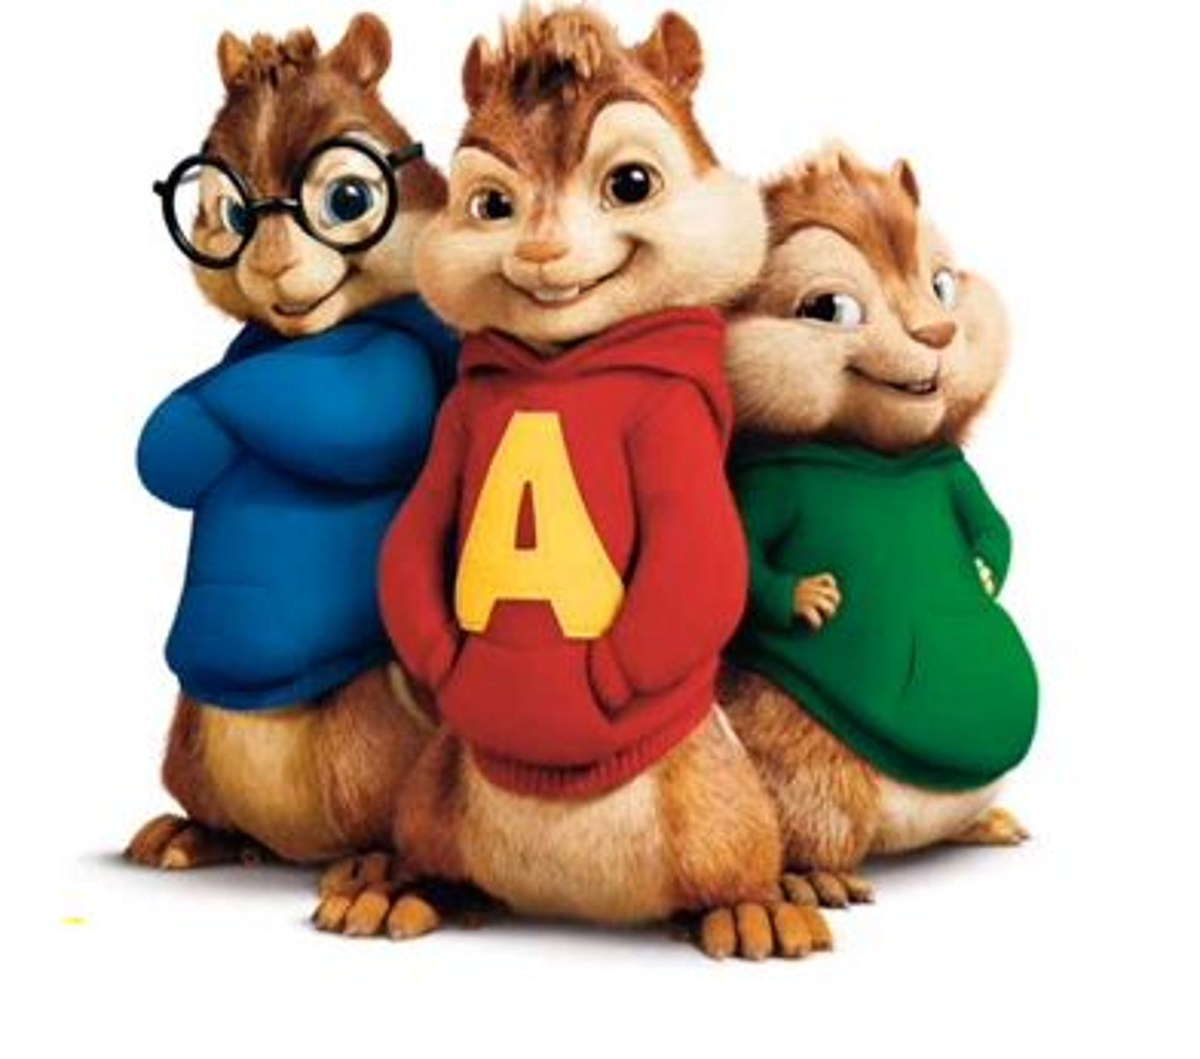 On This Day In 1972 Chipmunks Creator David Seville Dies At Age 52